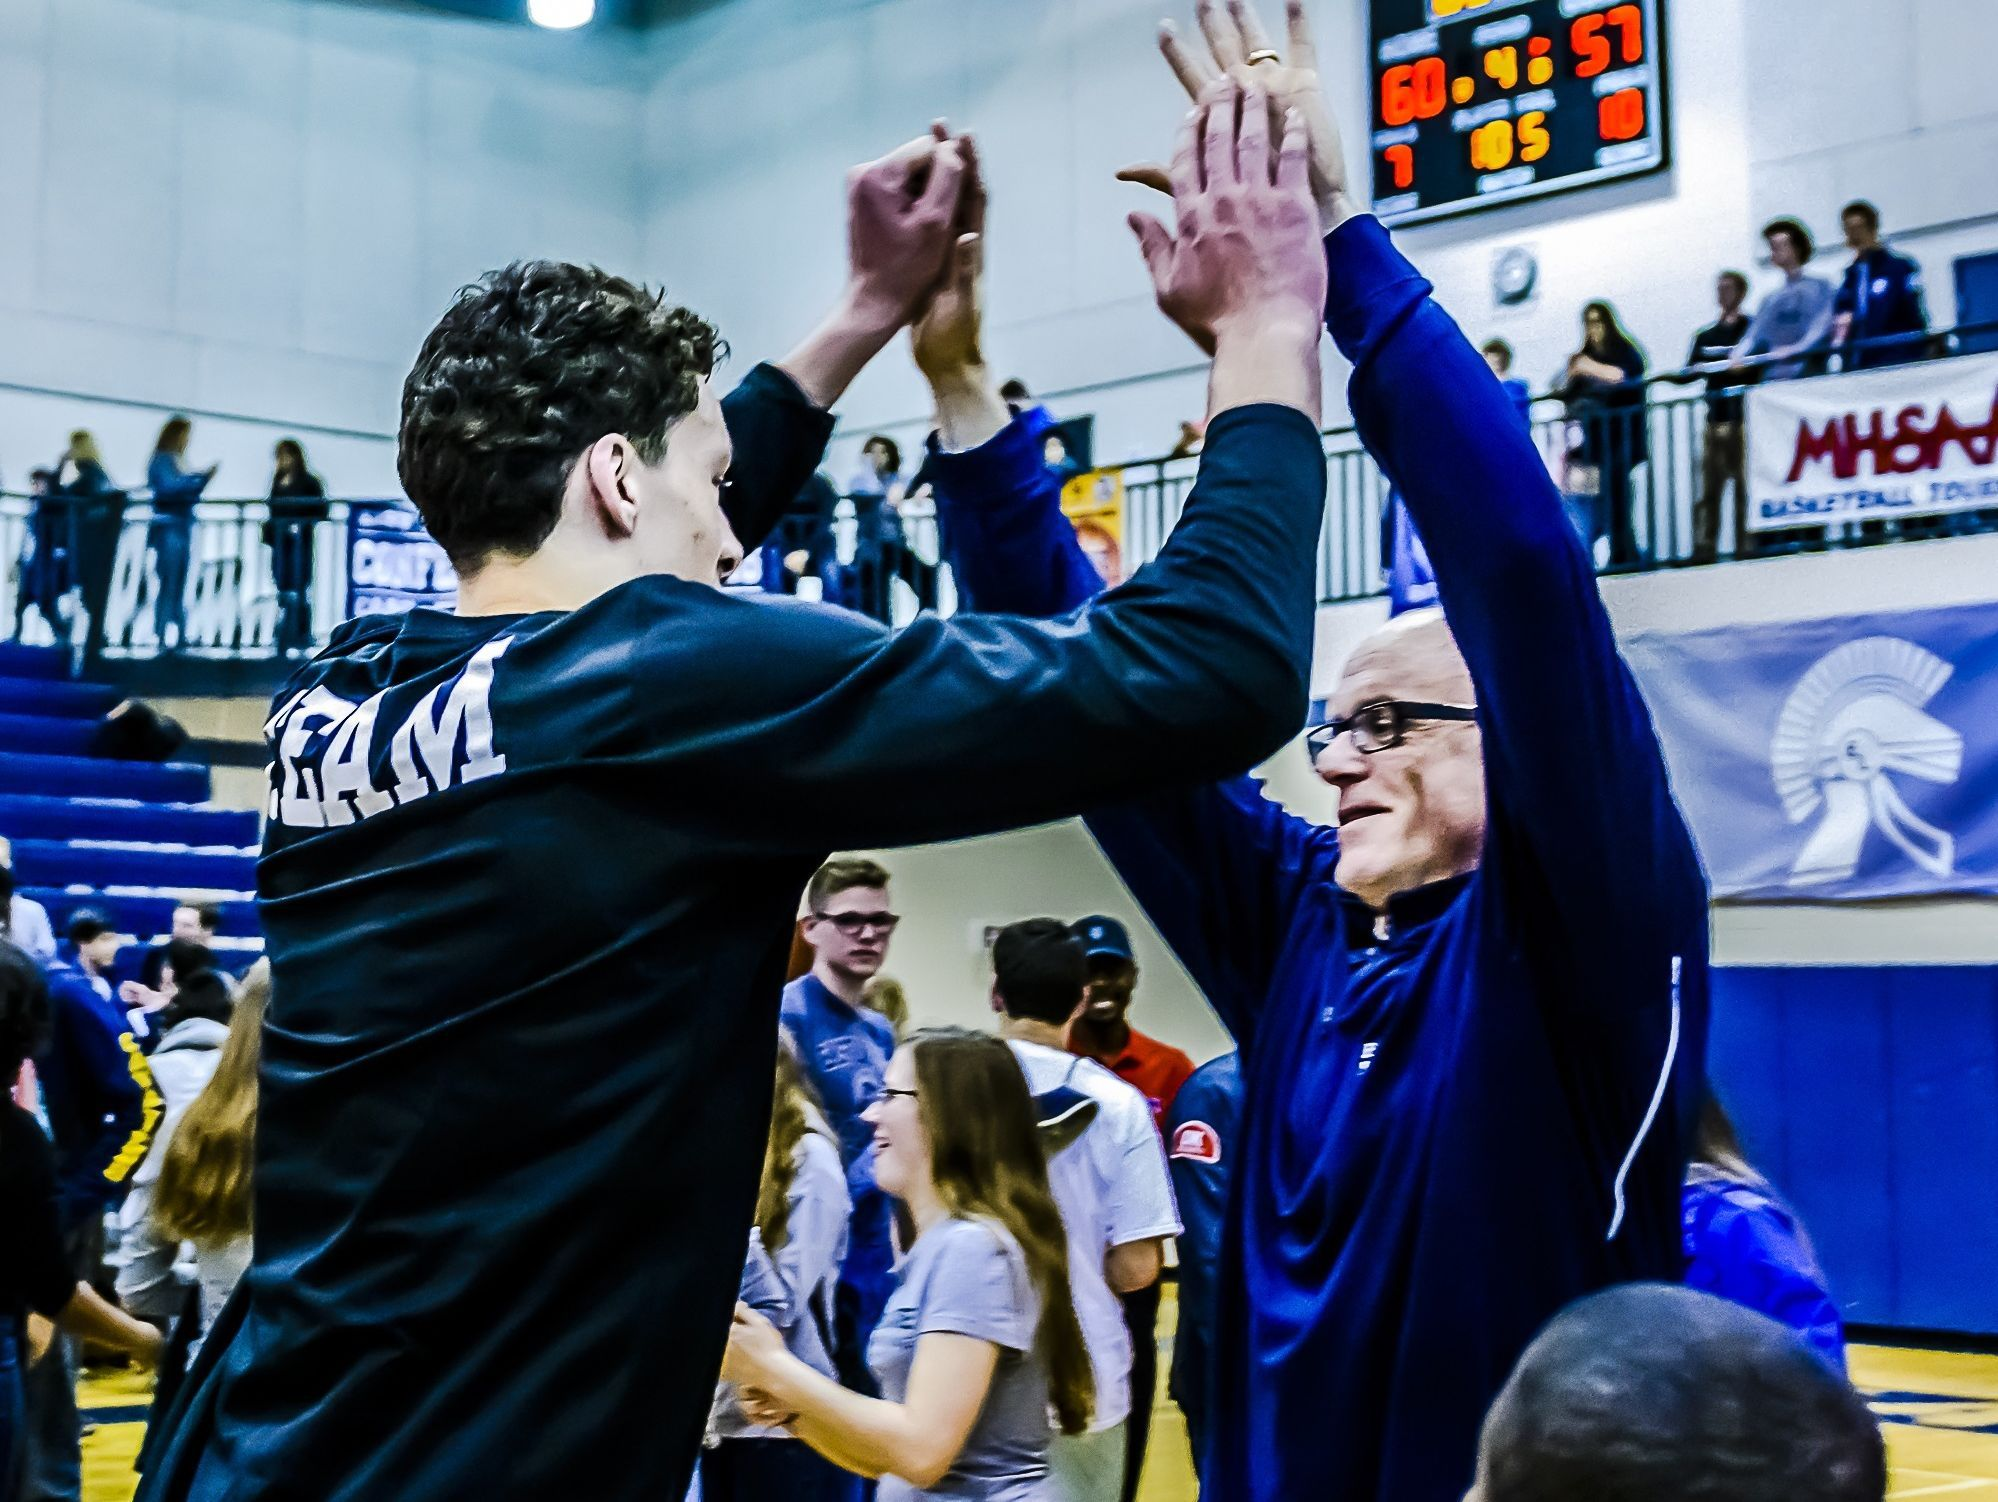 Brandon Johns, left, of East Lansing high-fives Finamore last season after winning the Class A district title. Finamore led the Trojans to a 23-1 record in 2015.